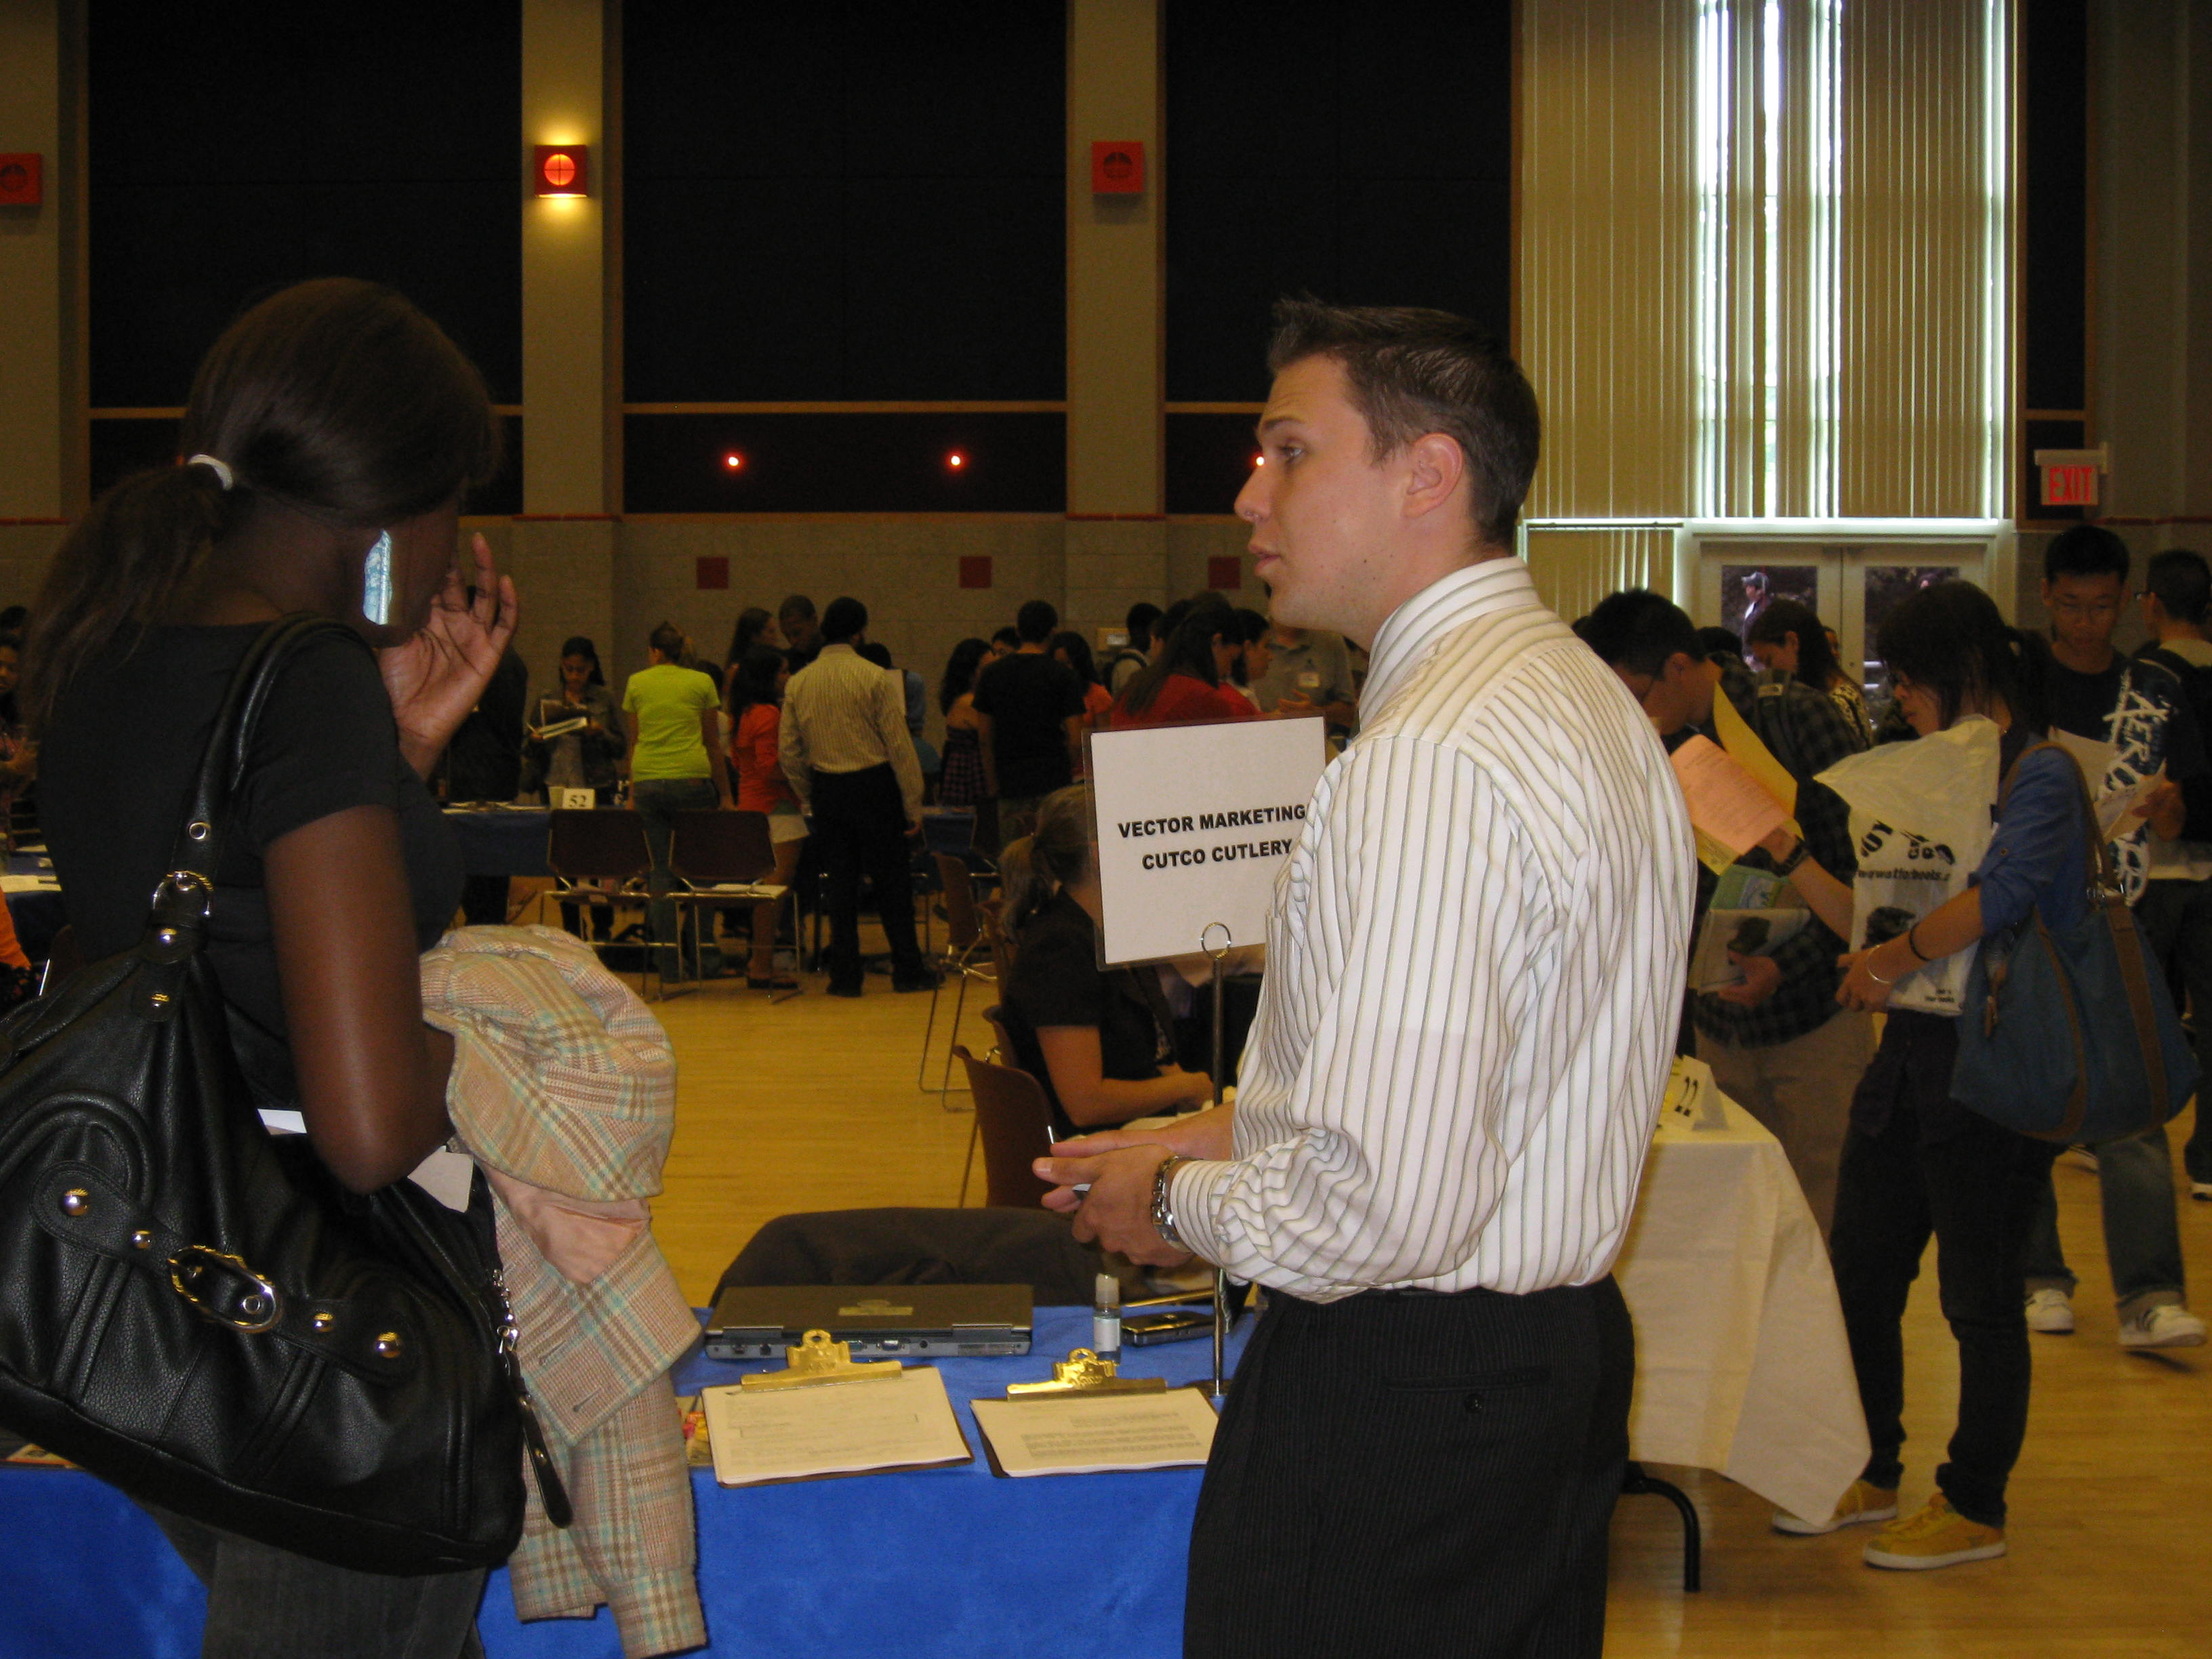 Vector Marketing at a part-time job expo held on campus